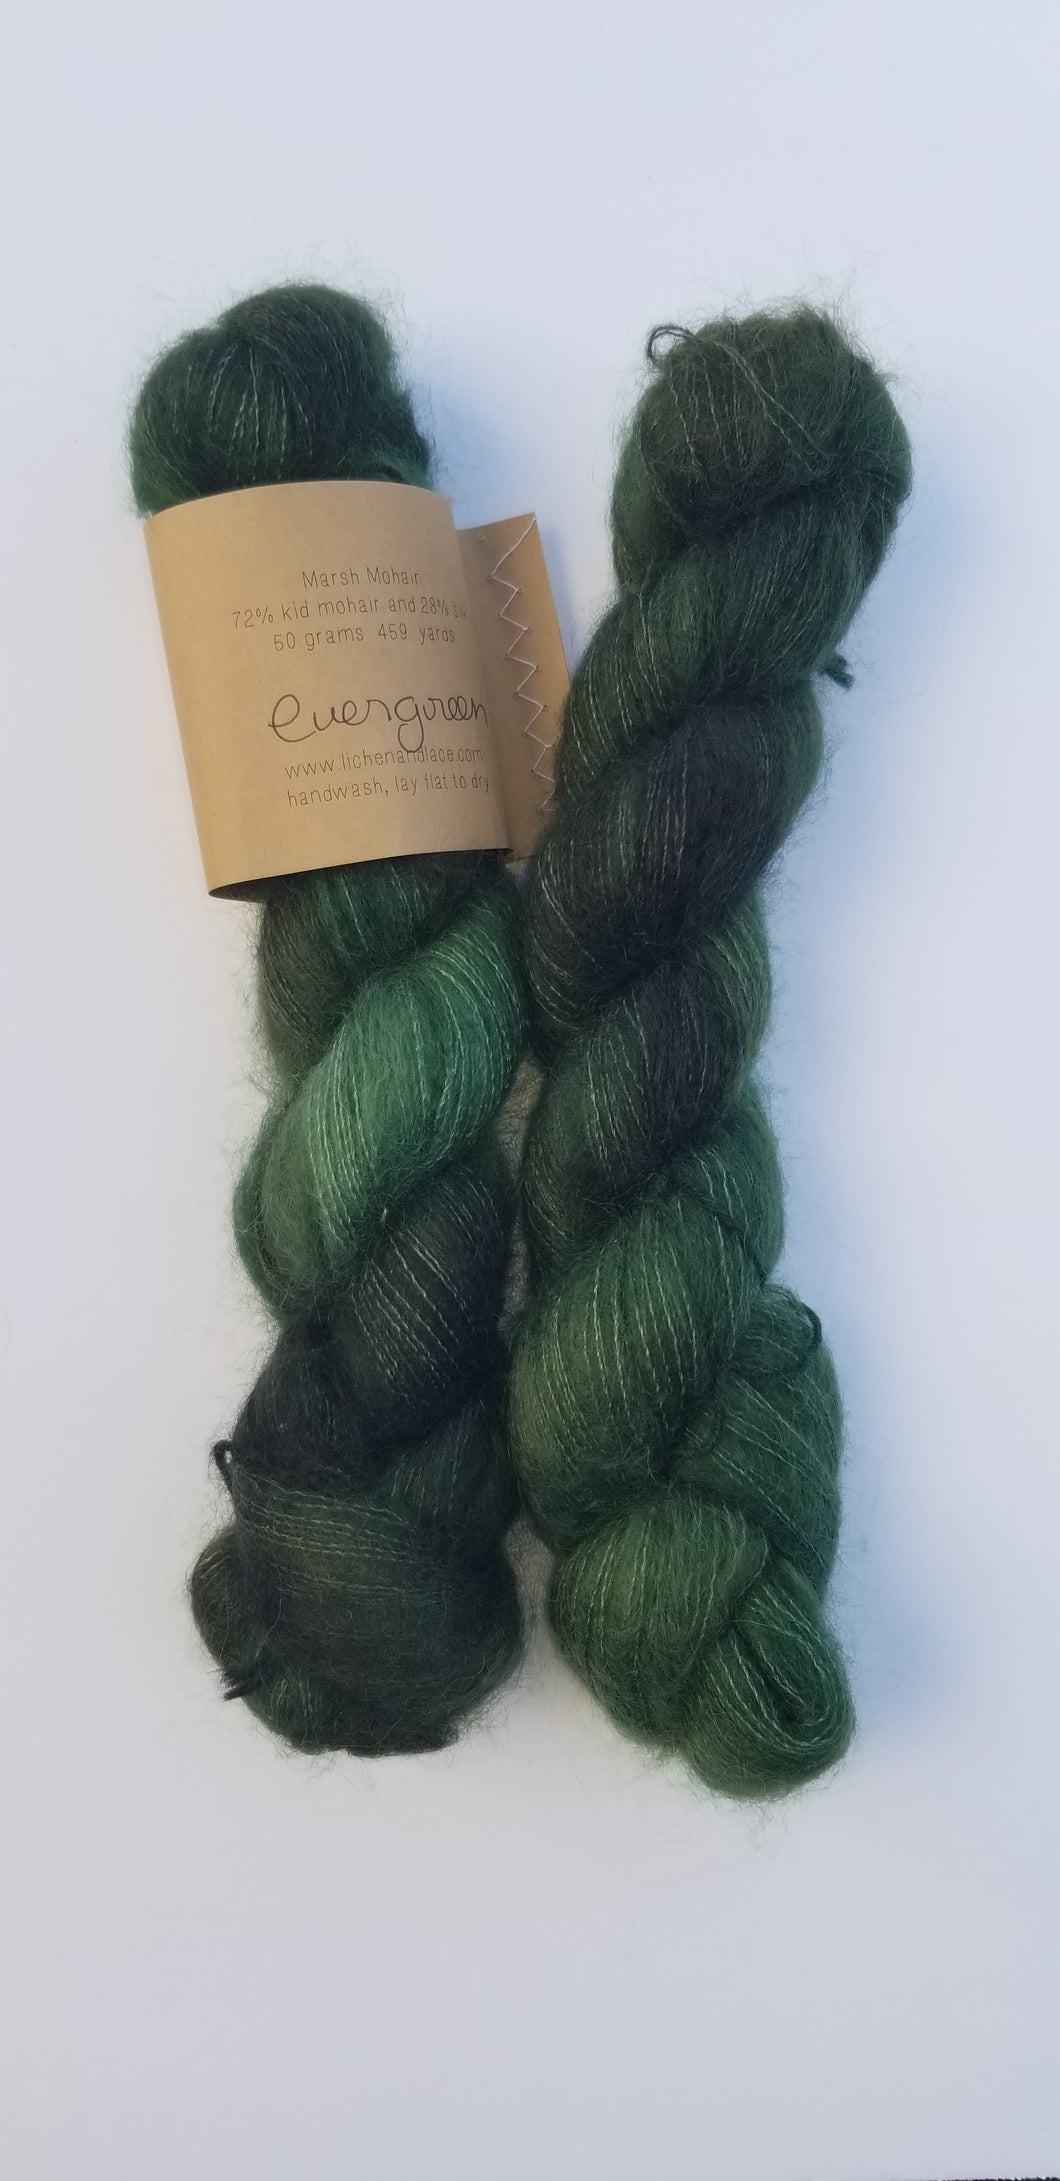 Lichen and Lace -  Marsh Mohair - Evergreen